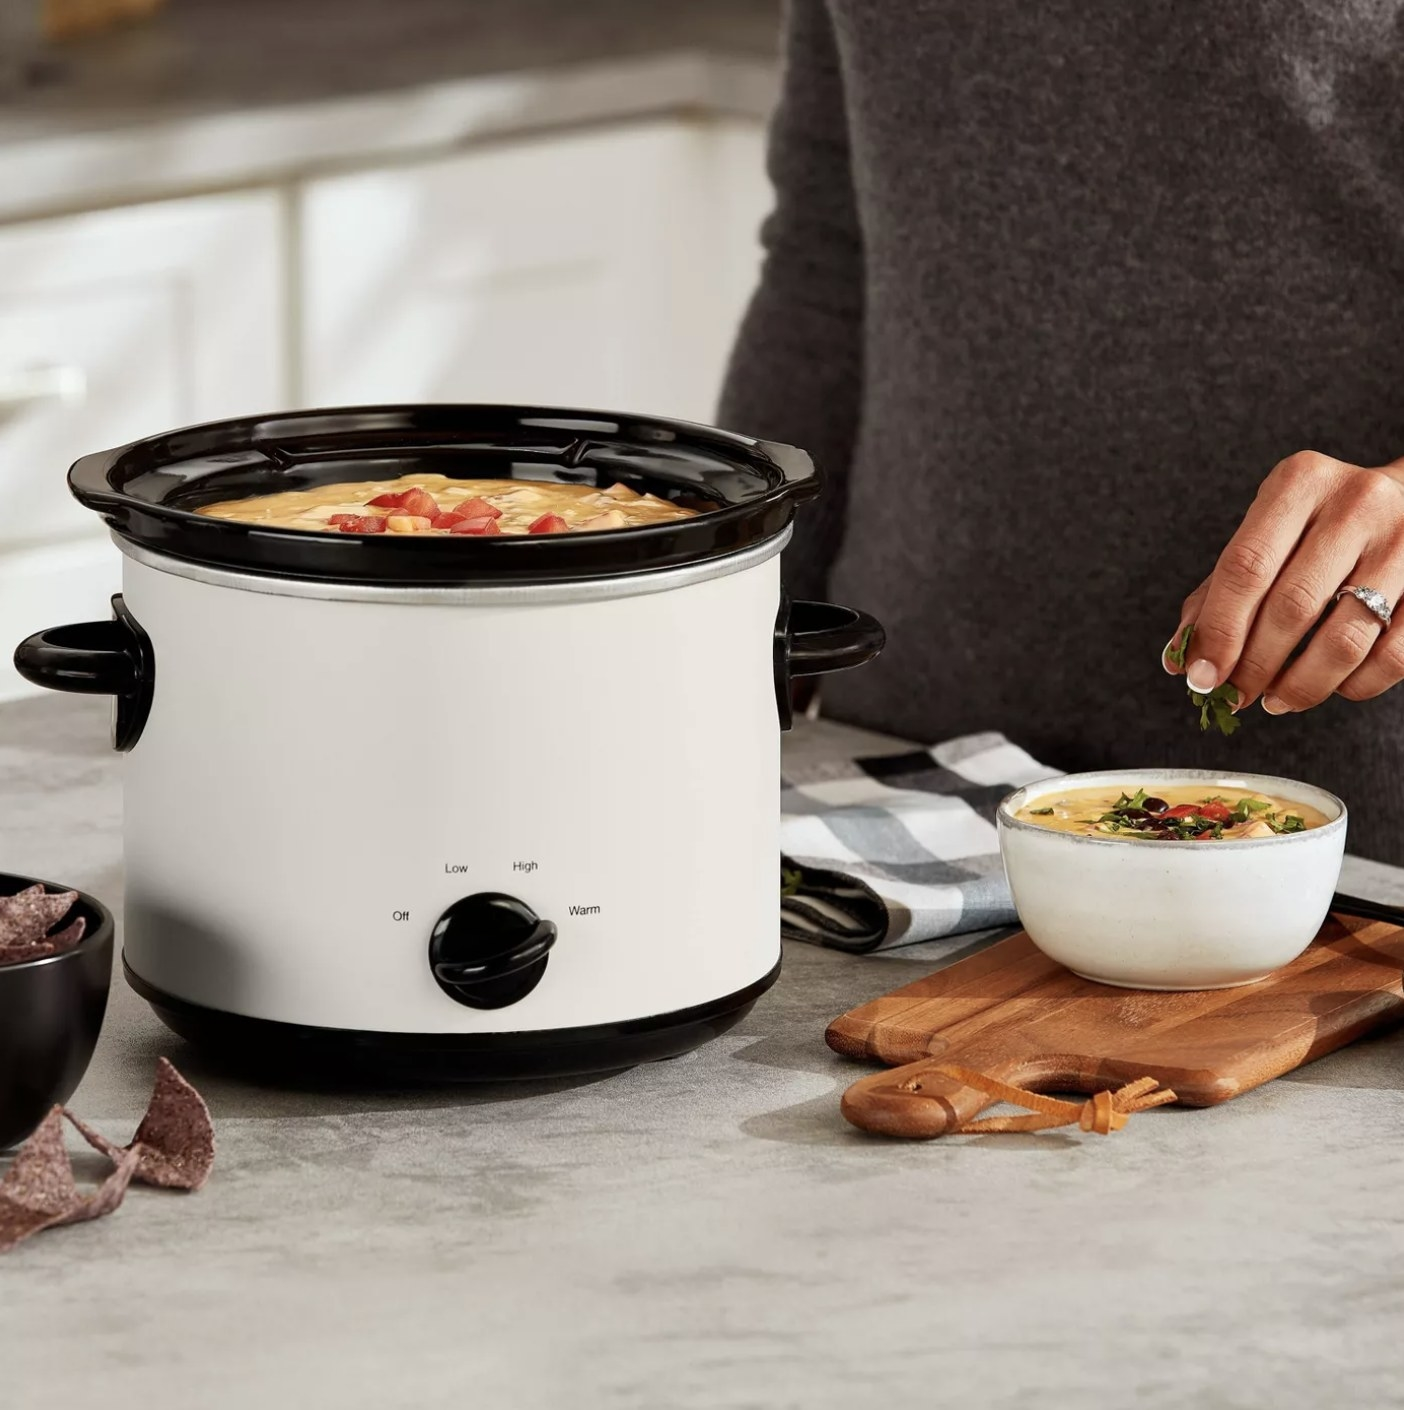 The white slow cooker